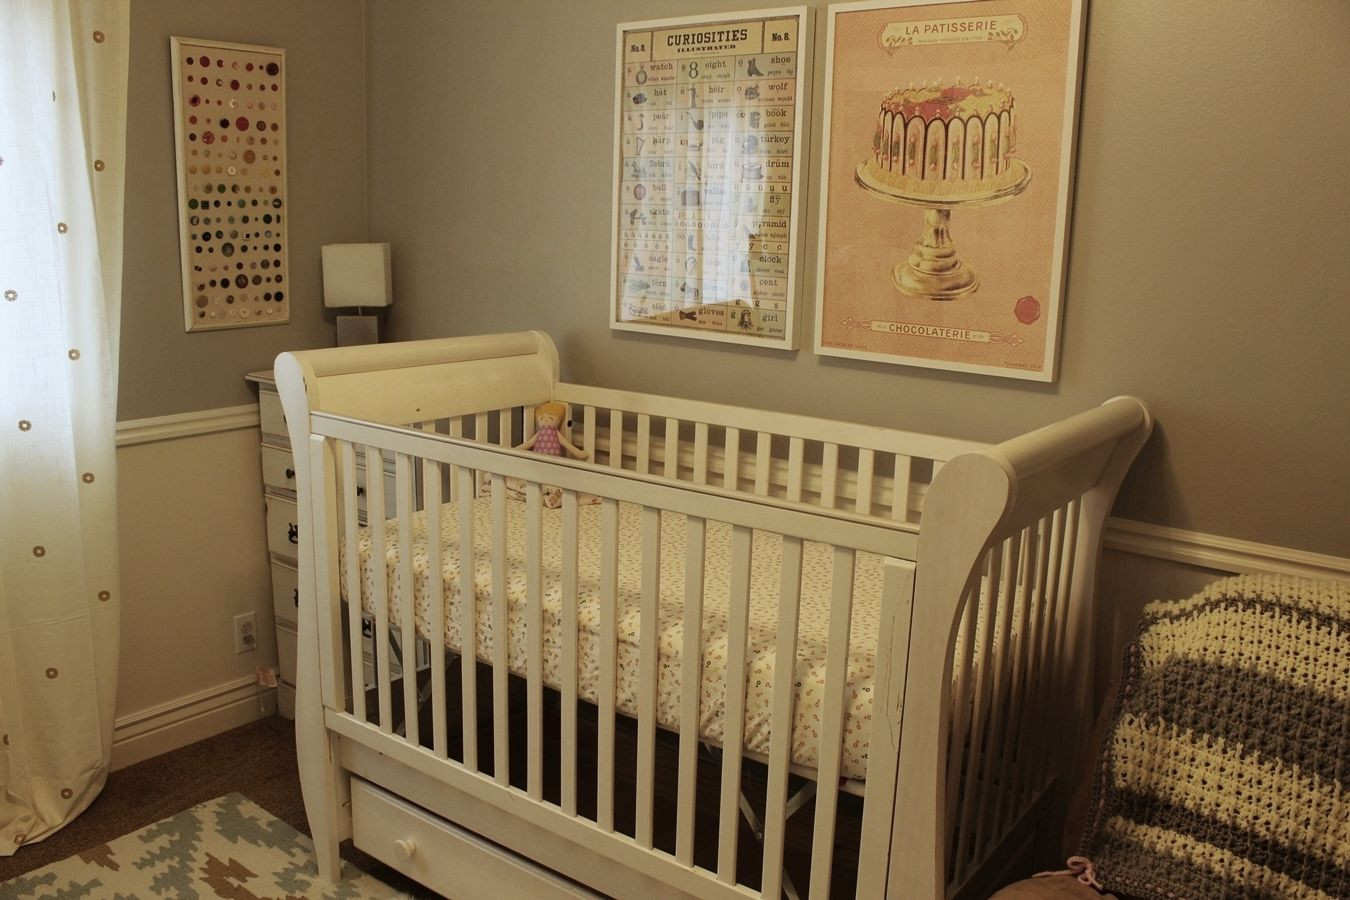 Best ideas about DIY Baby Crib . Save or Pin DIY Crib Sheet Step by Step Tutorial for Making Two Types Now.